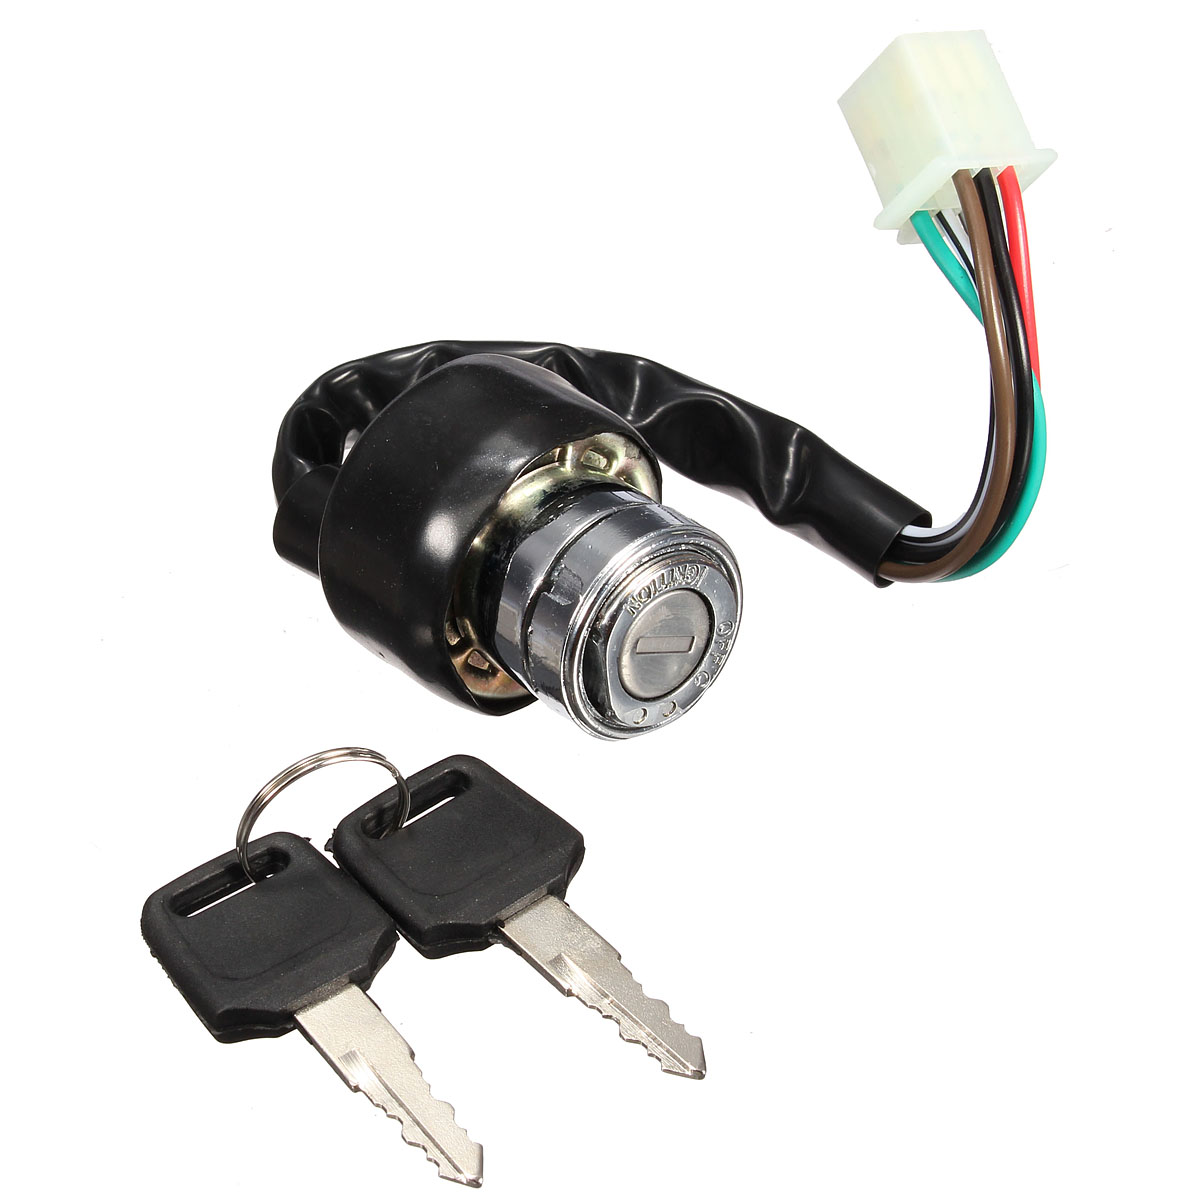 popular atv wiring buy cheap atv wiring lots from atv wiring universal motorcycle atv off road vehicles 6 wire ignition switch switches 2 keys